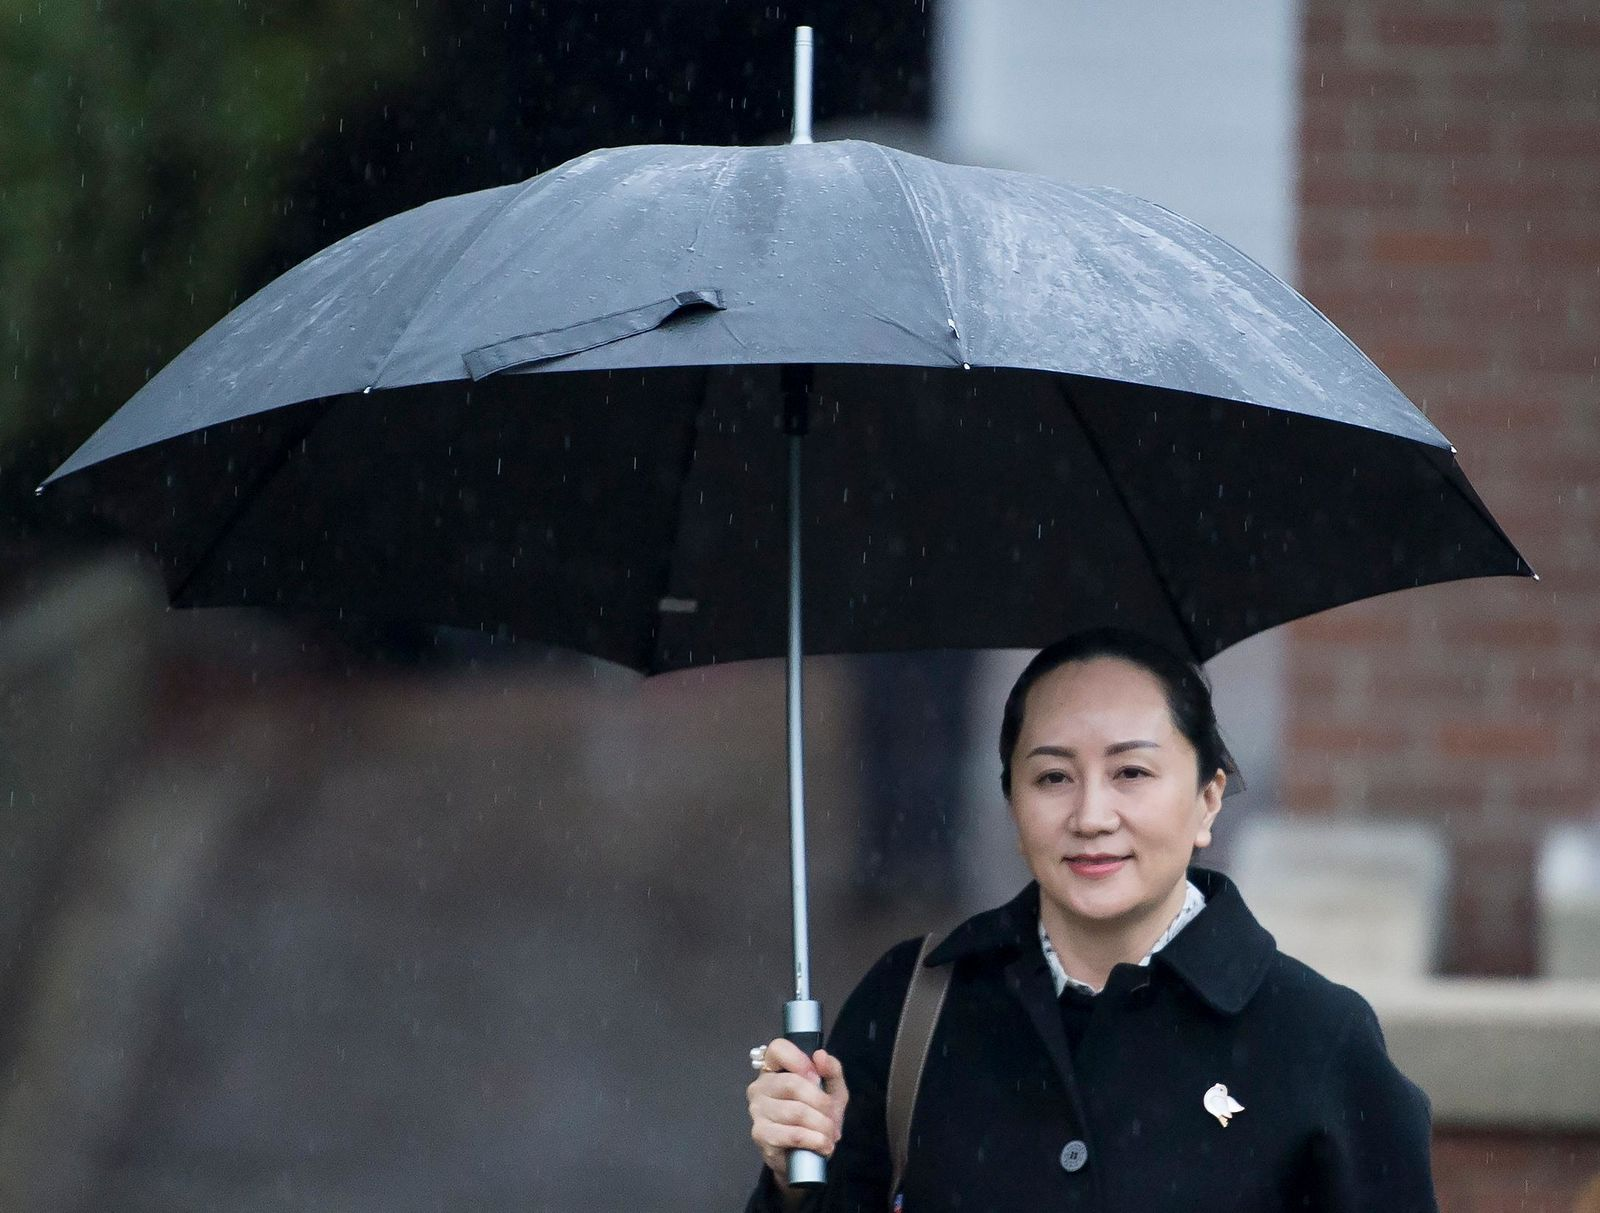 Meng Wanzhou, chief financial officer of Huawei, leaves her home to go to B.C. Supreme Court in Vancouver, Thursday, January, 23, 2020. (Jonathan Hayward/The Canadian Press via AP)